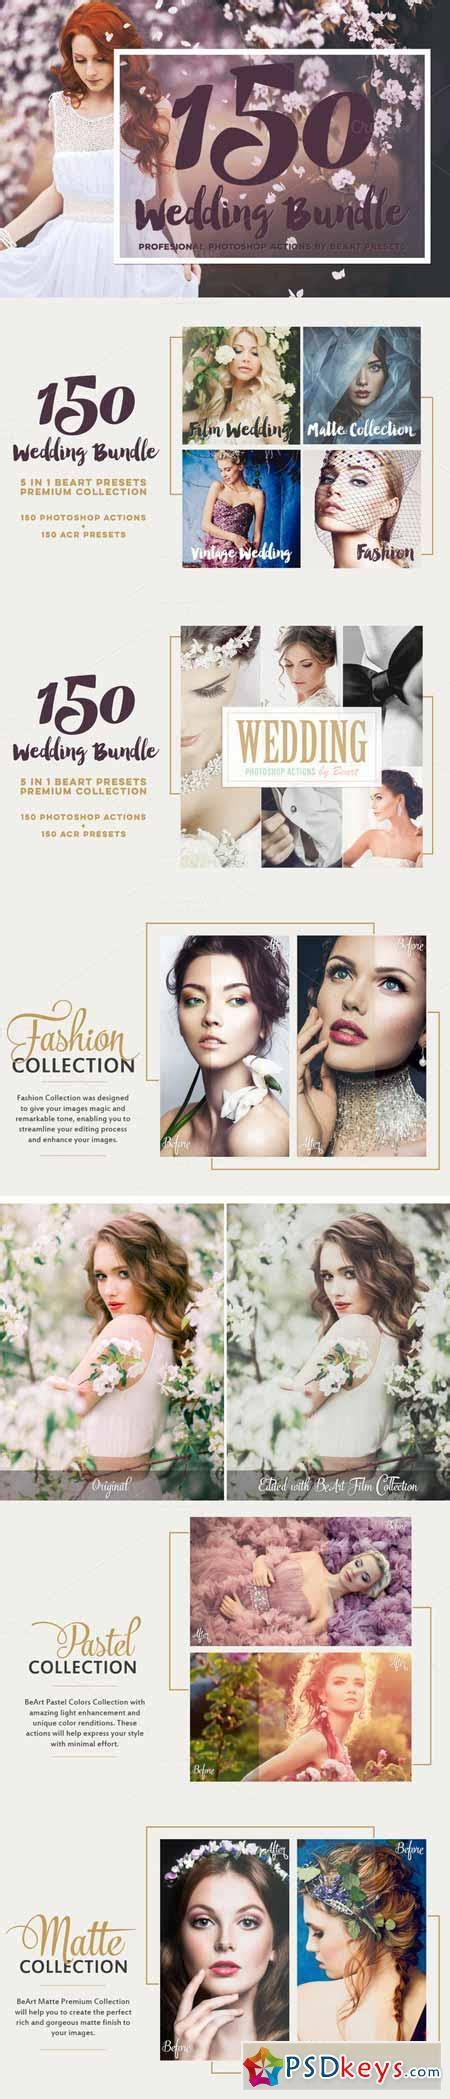 The Best Wedding Photoshop Actions 397418 » Free Download